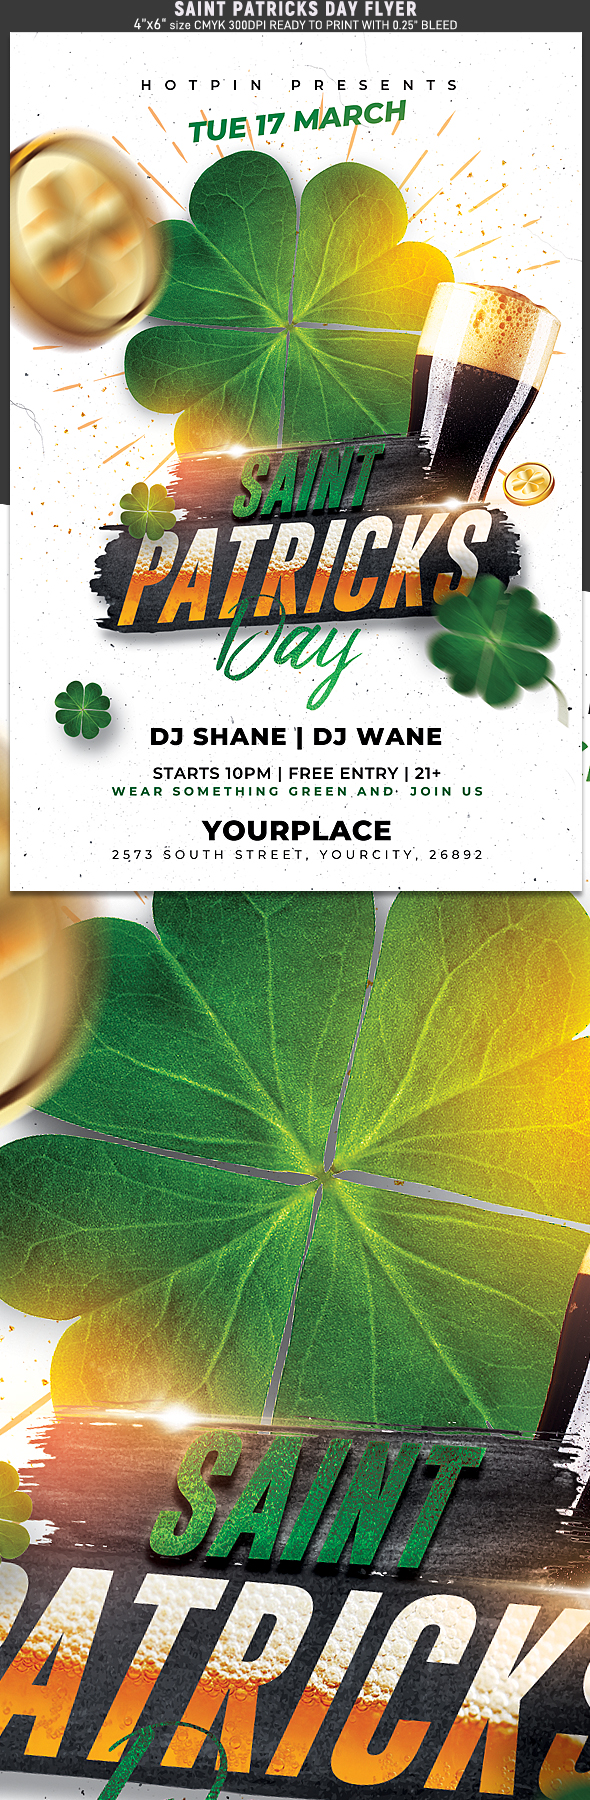 Saint-Patricks-Day-Flyer-Template-Preview